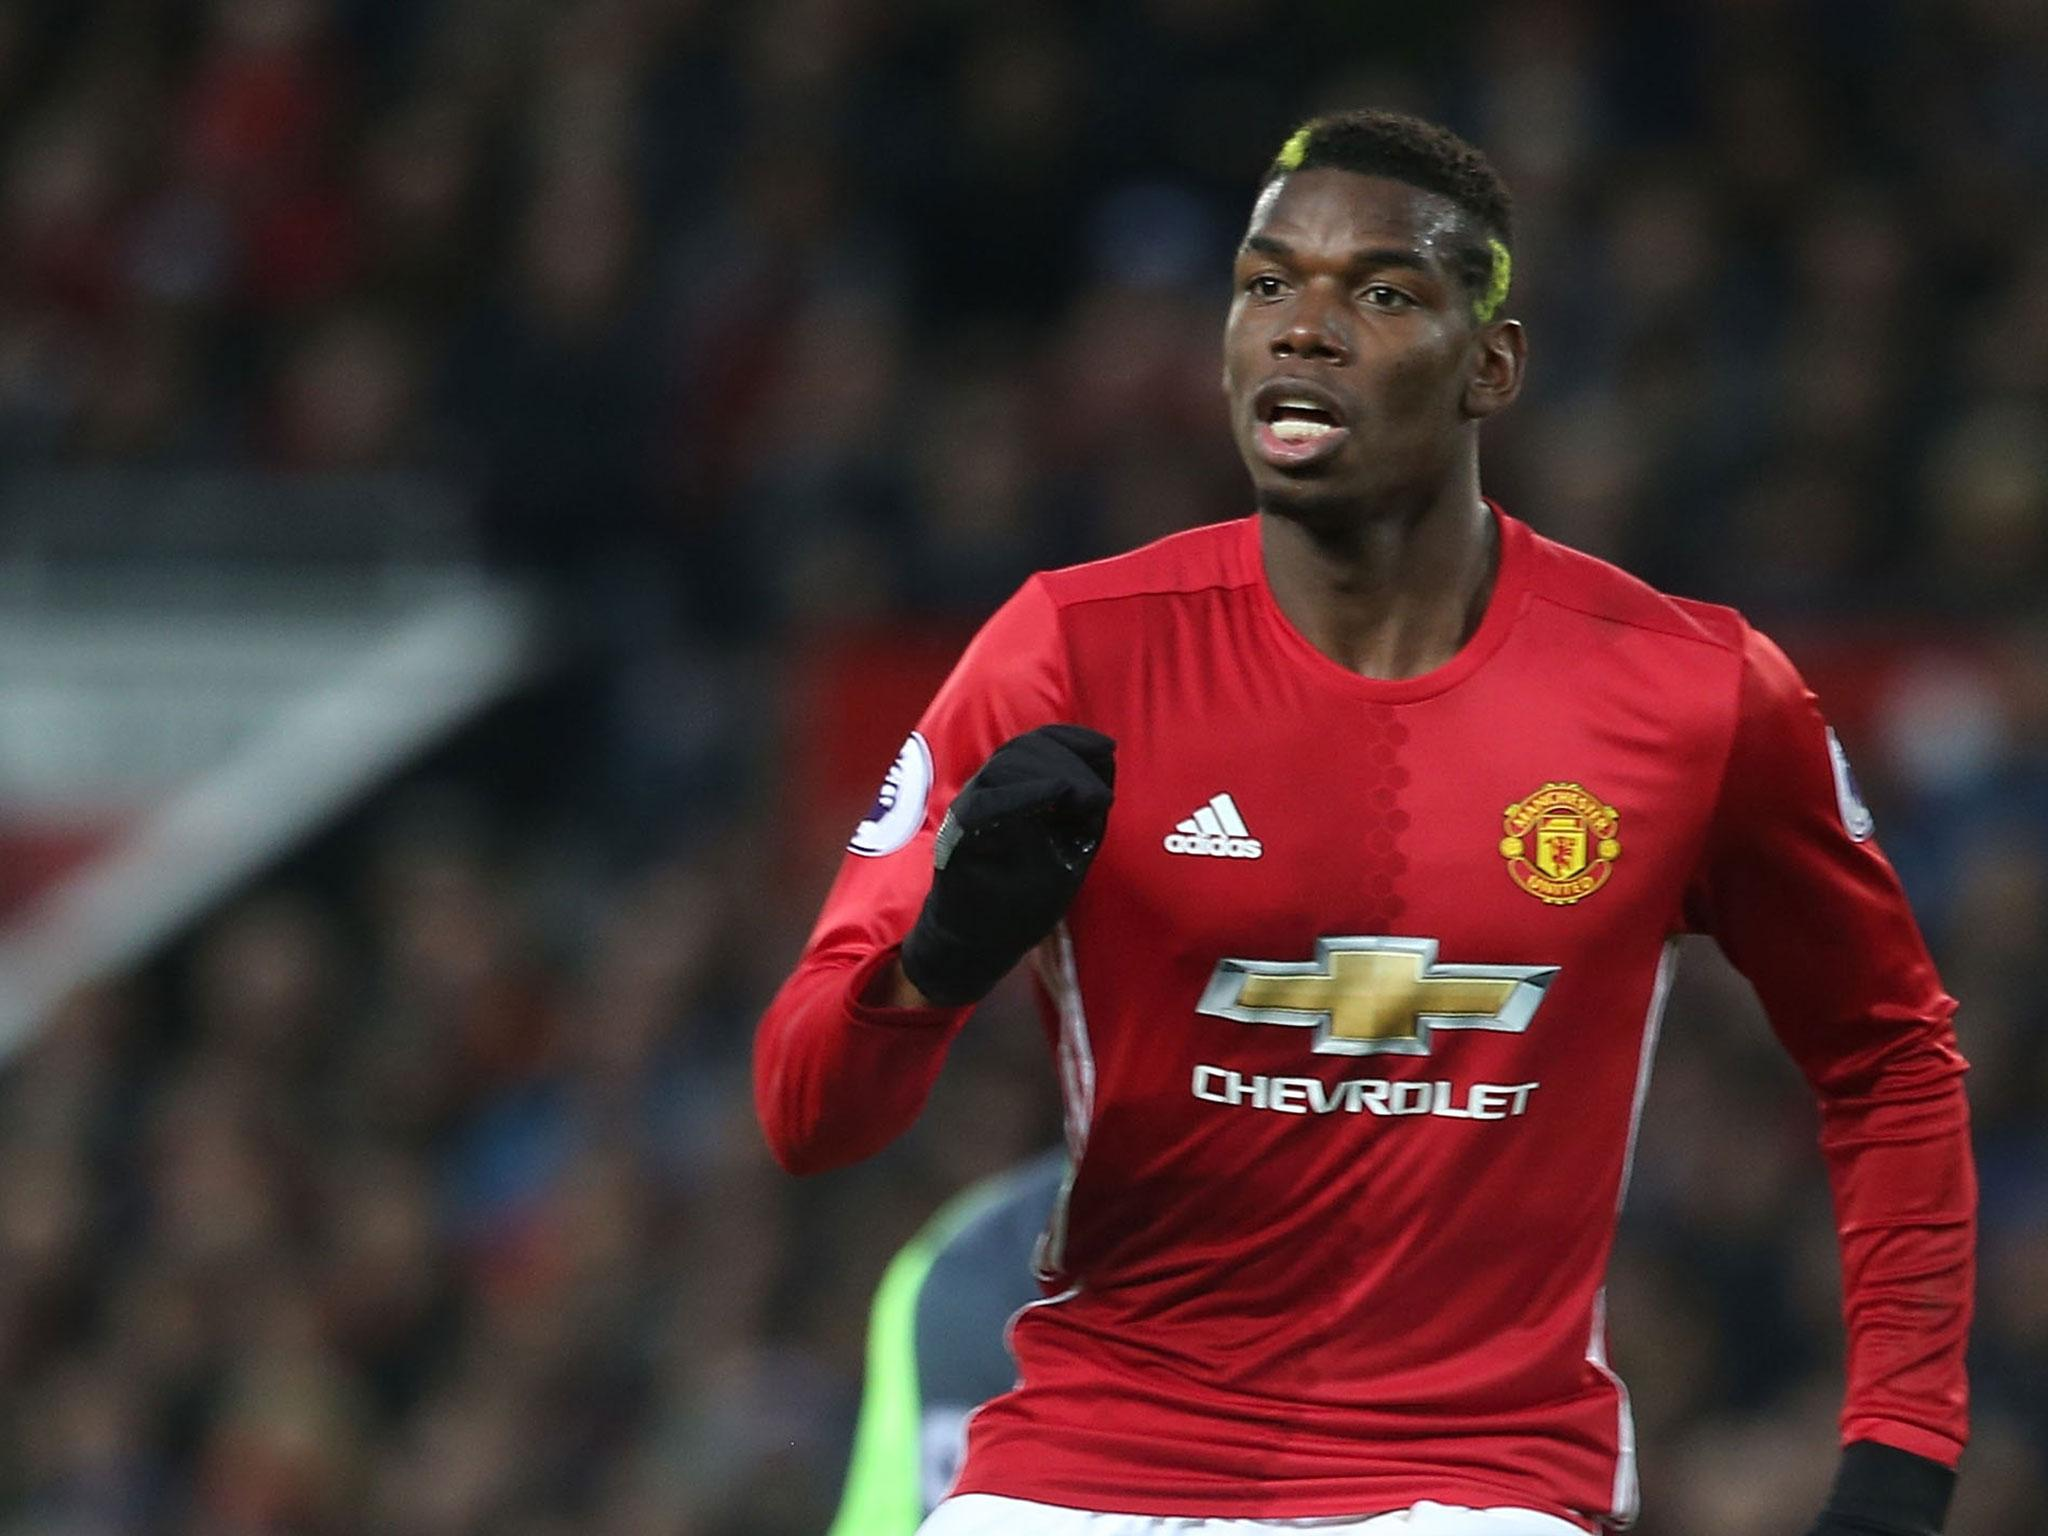 Paul Pogba: Manchester United Midfielder Paul Pogba Becomes First